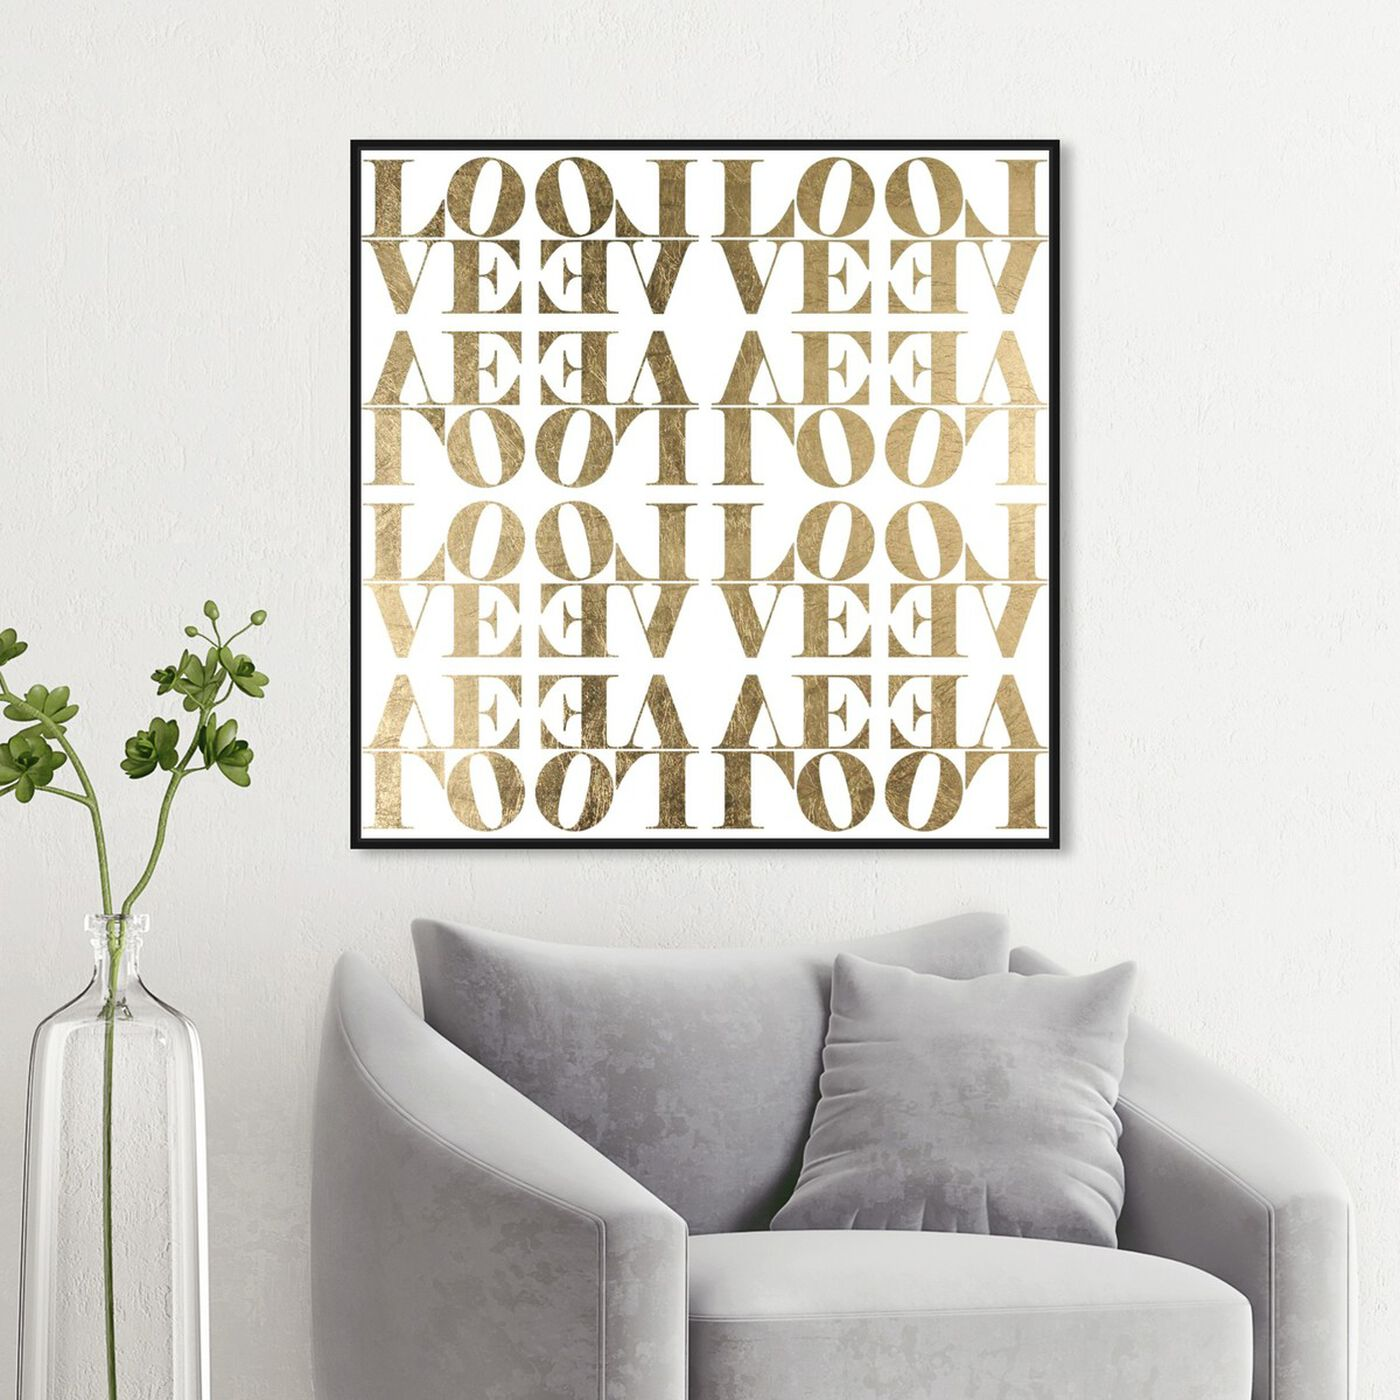 Hanging view of Infinite Love I featuring typography and quotes and love quotes and sayings art.